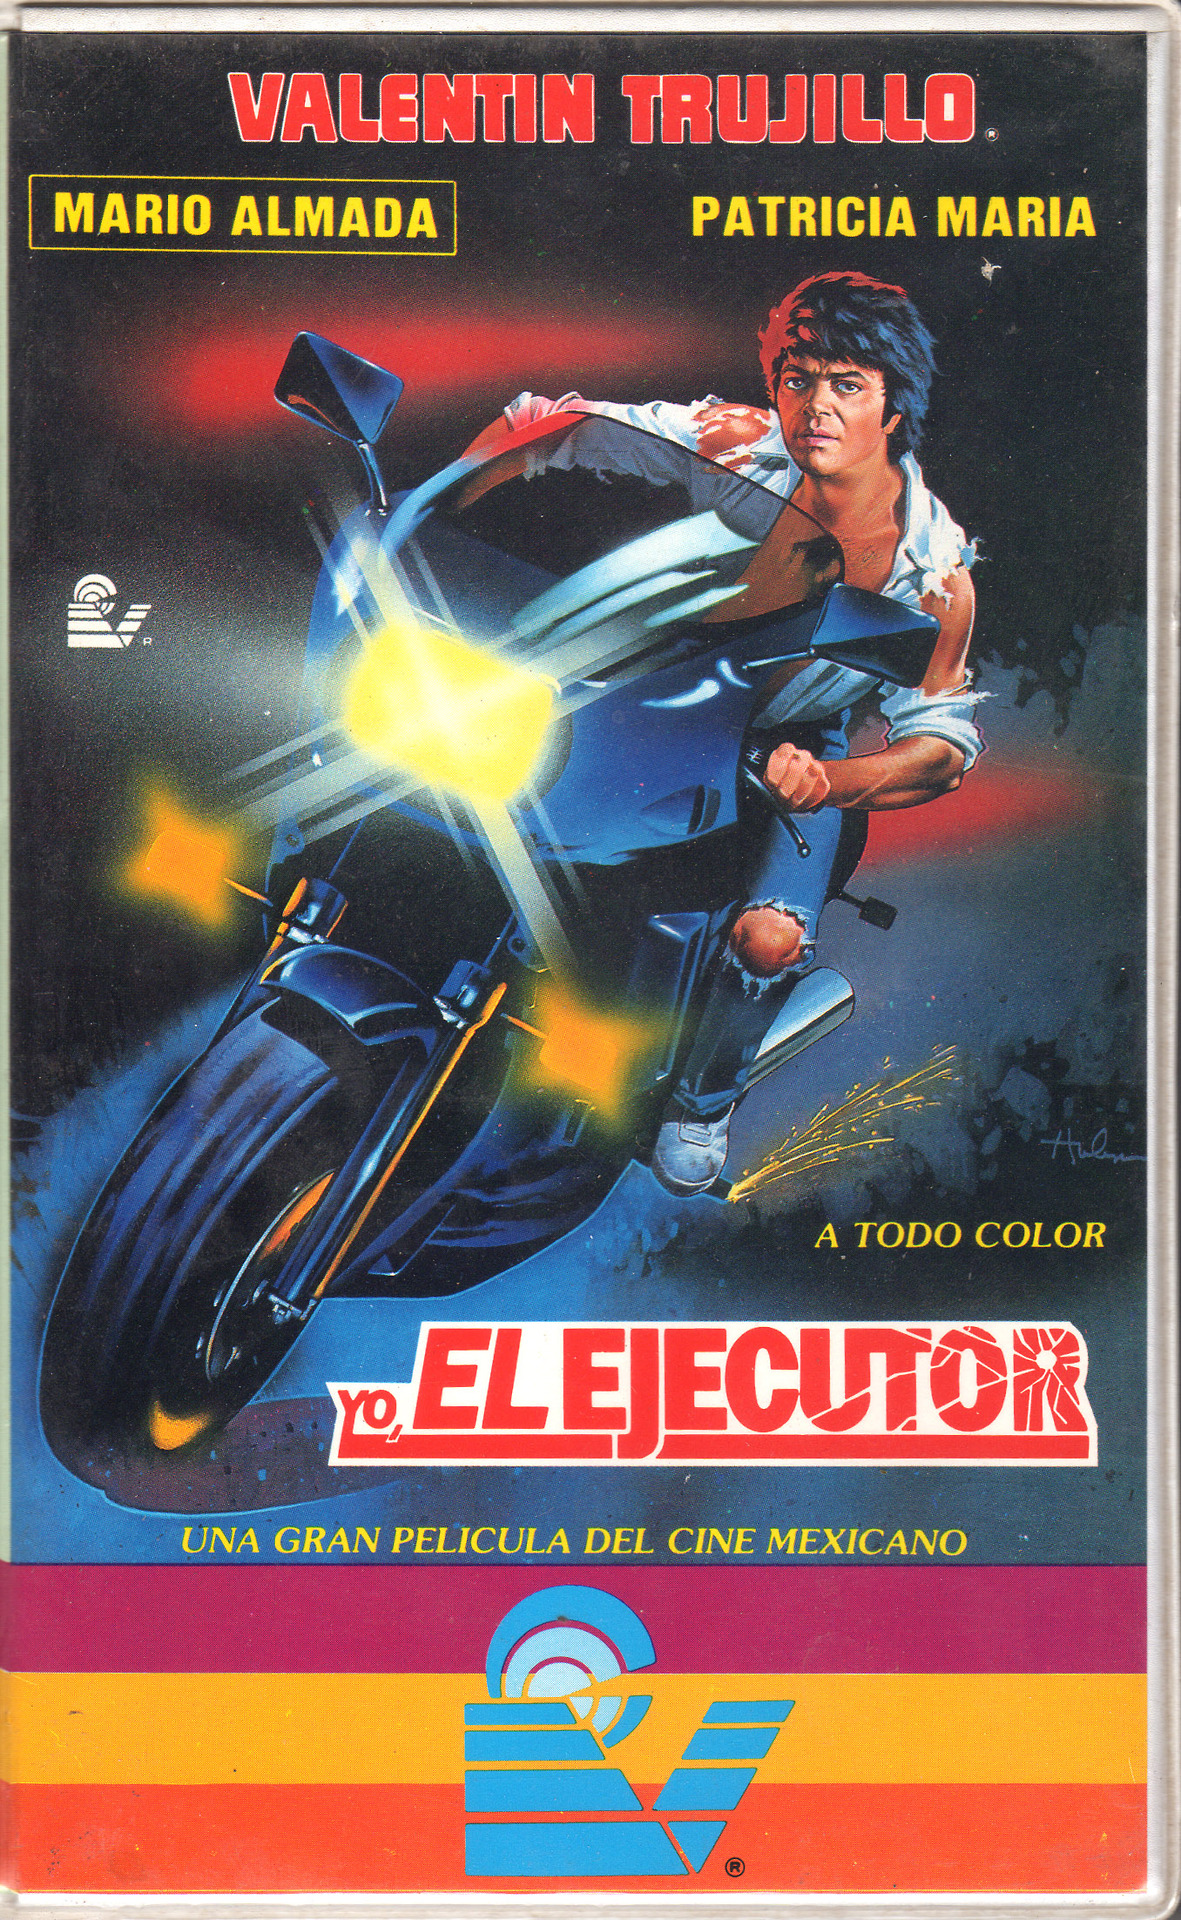 vhs covers illustrations 10